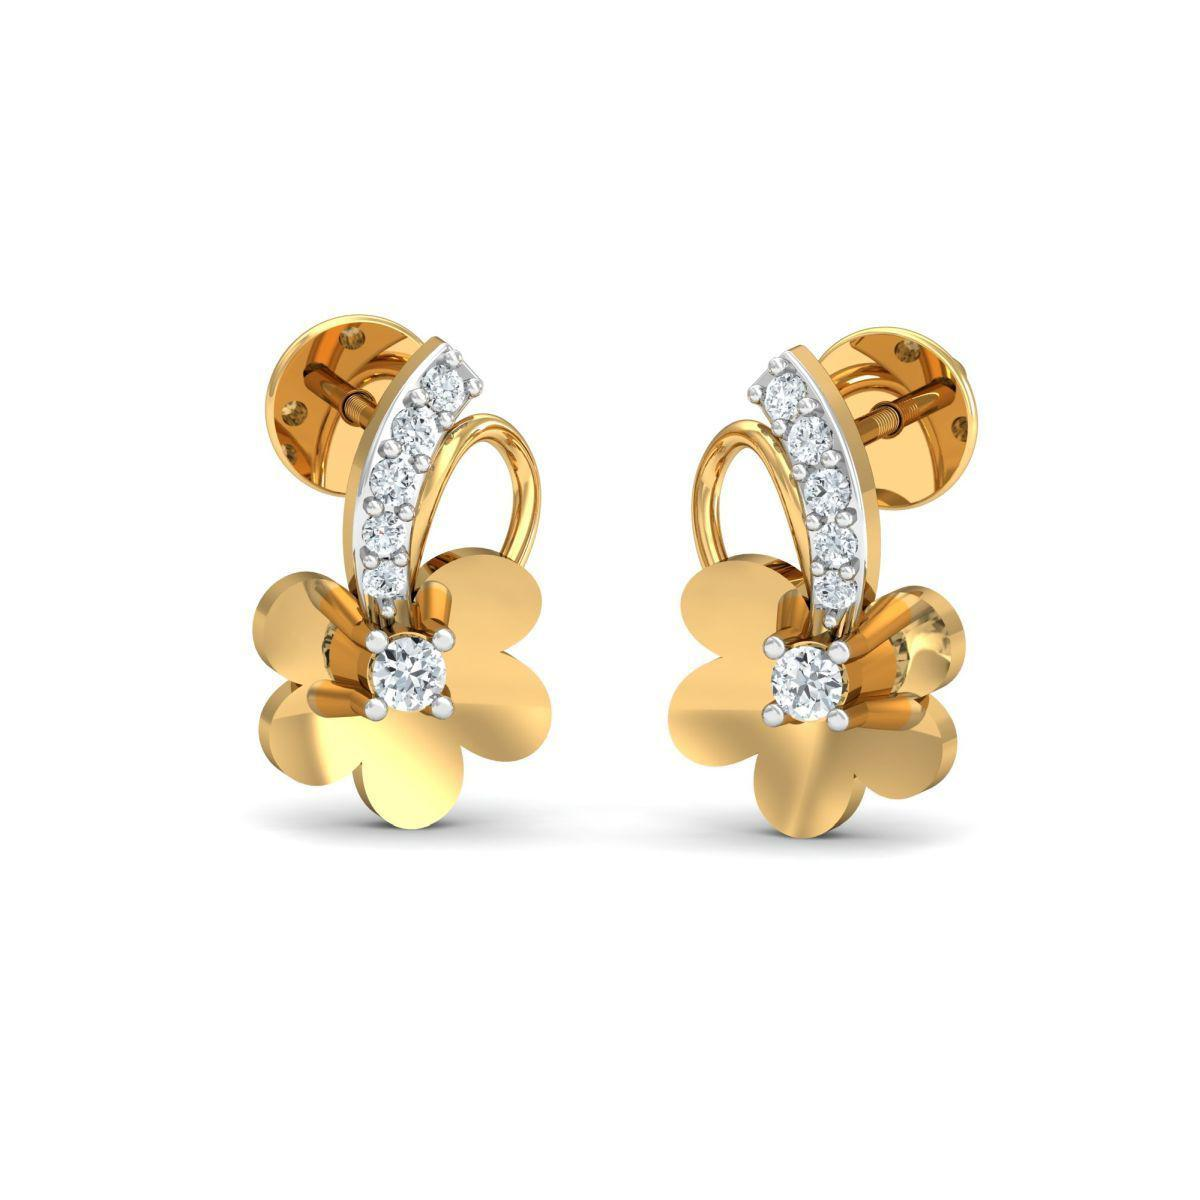 Diamoire Jewels 18kt Yellow Gold 0.10ct Pave Diamond Infinity Earrings II m60By